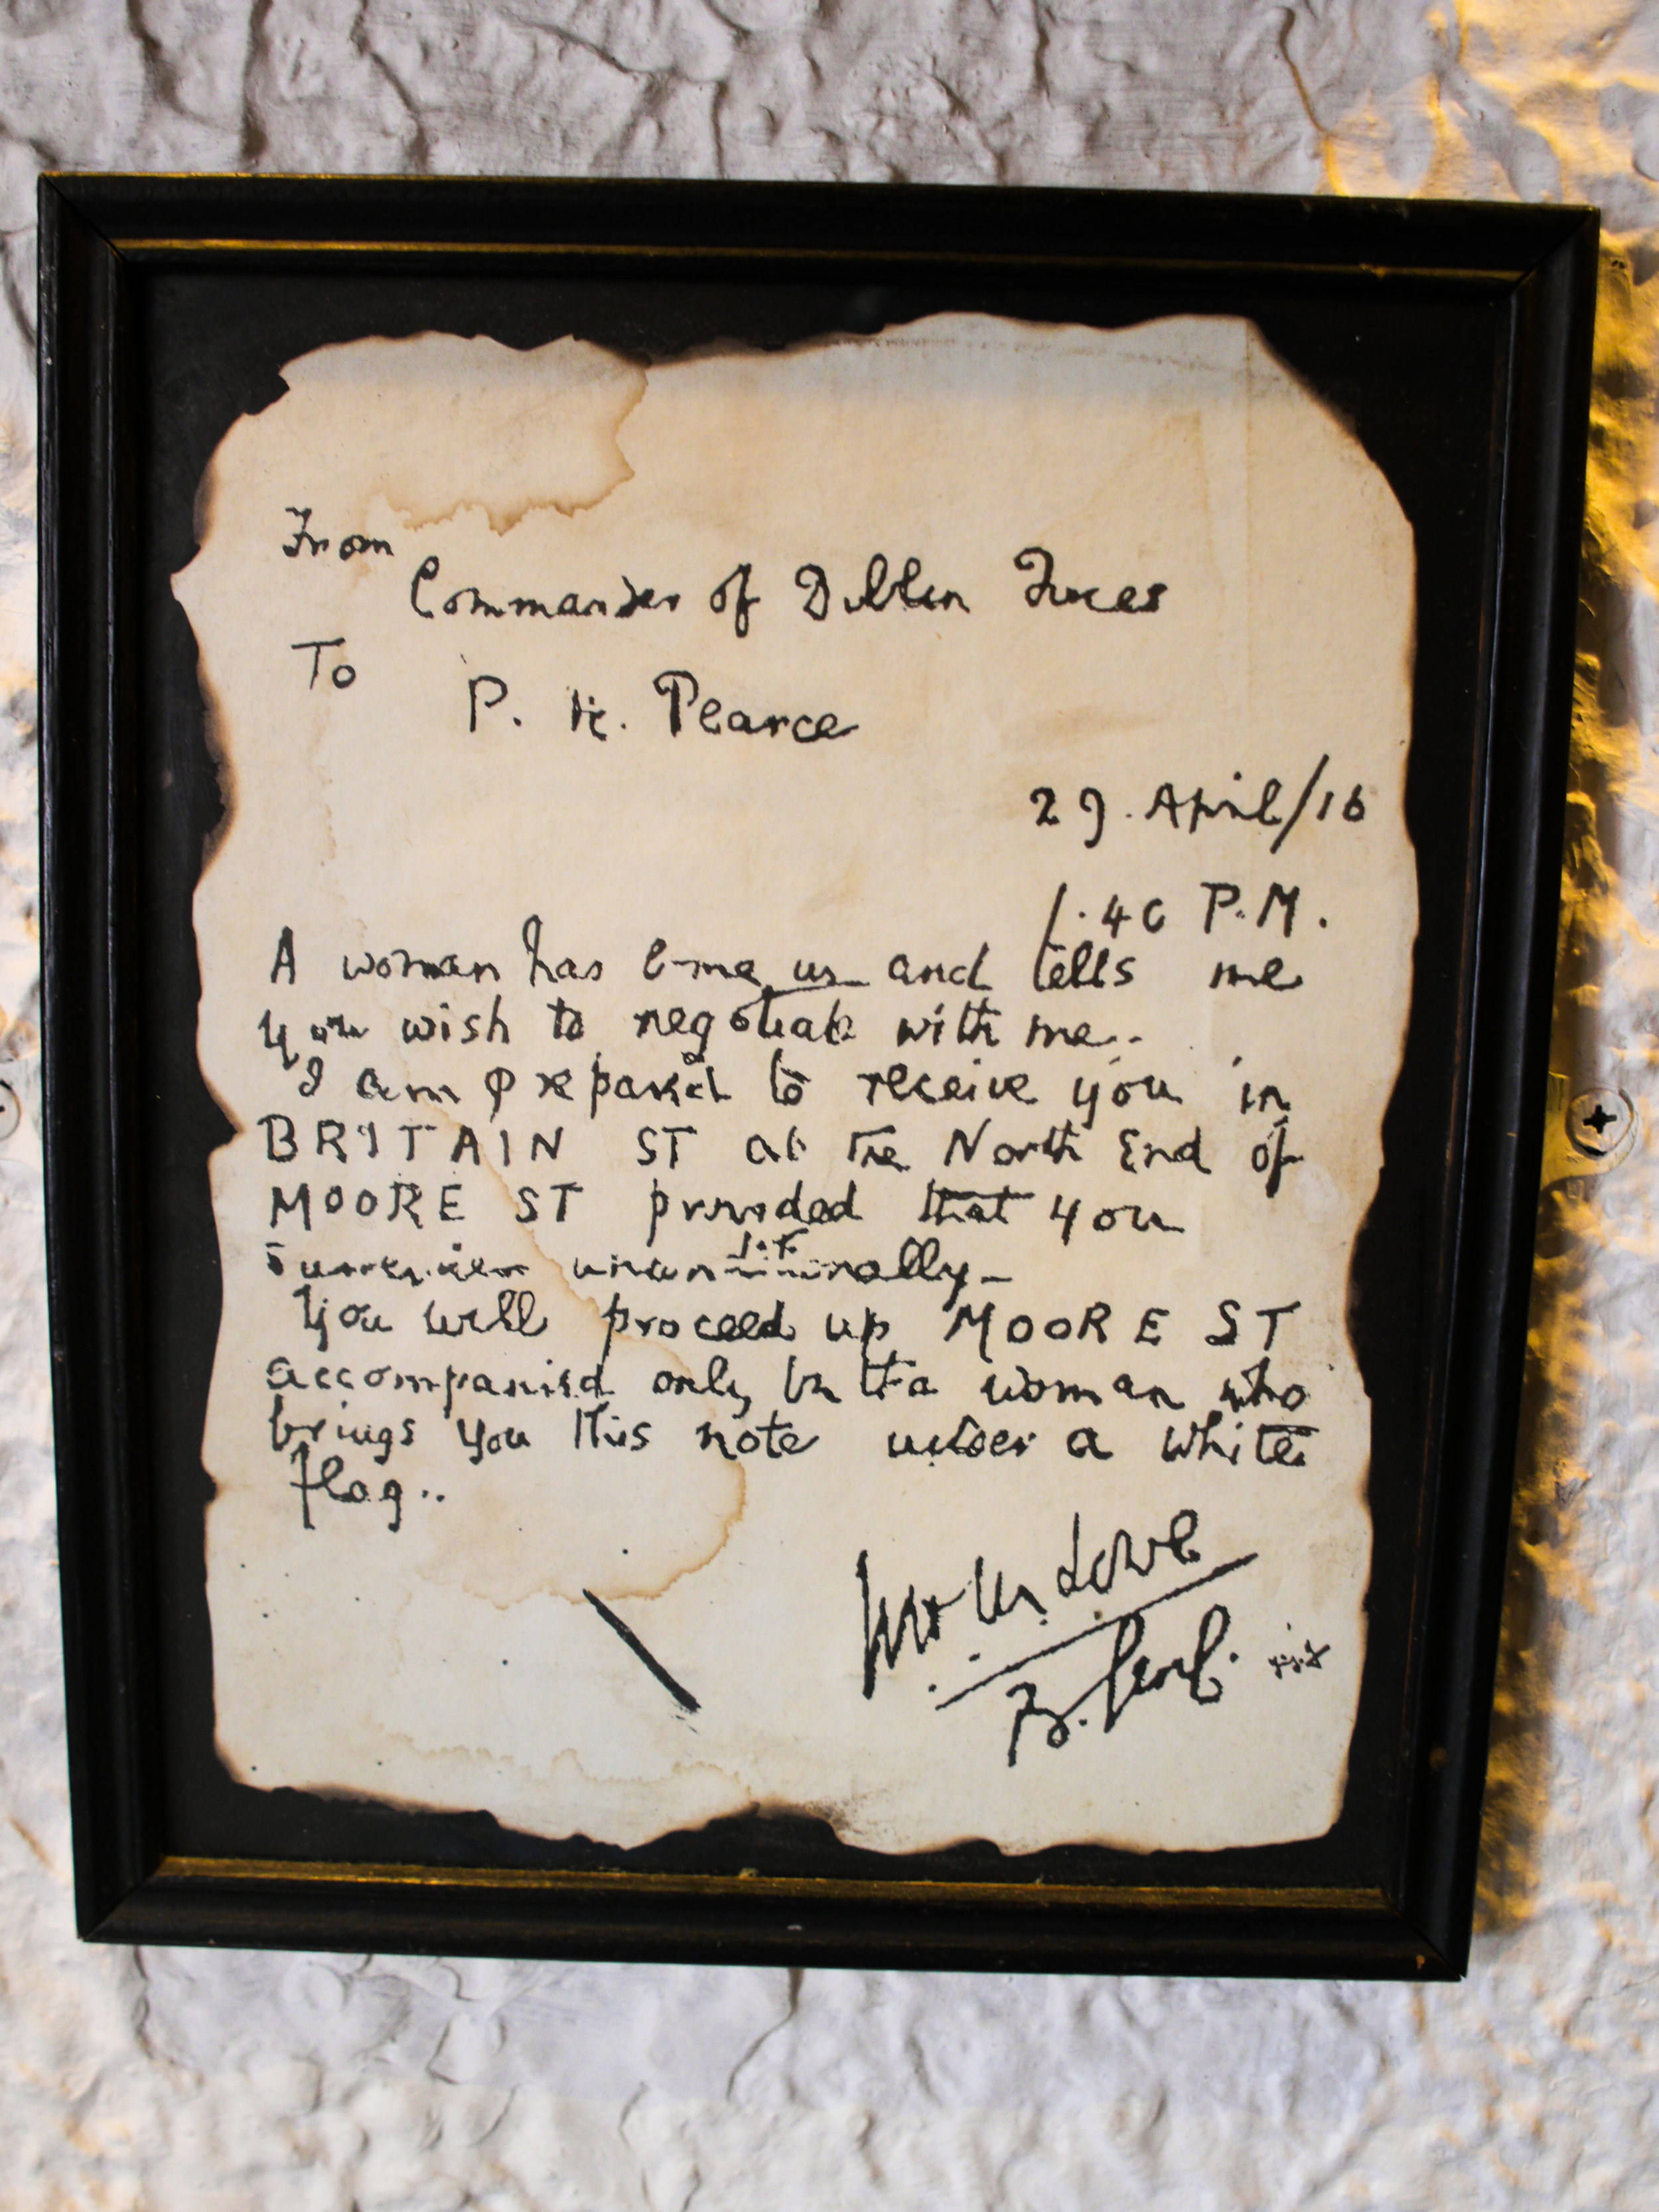 Letter to Patrick Pearse from the Commander of Dublin Forces at Johnnie Fox's Museum at Johnnie Fox's Pub